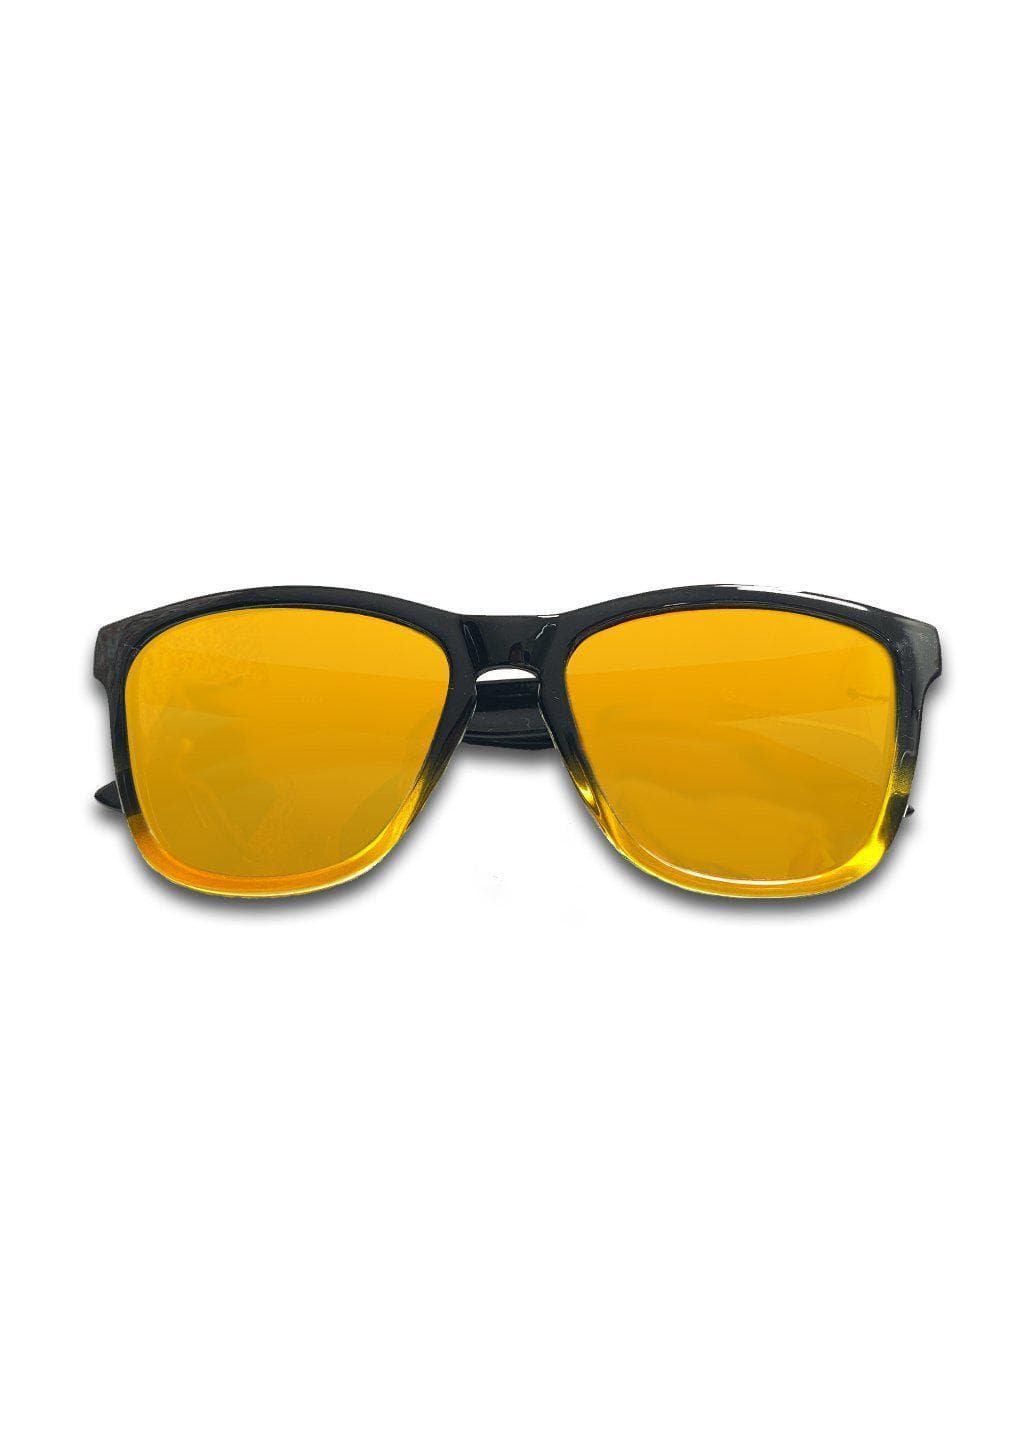 MOOD Wayfarer - Sunny - Sunglasses with yellow mirror lenses.